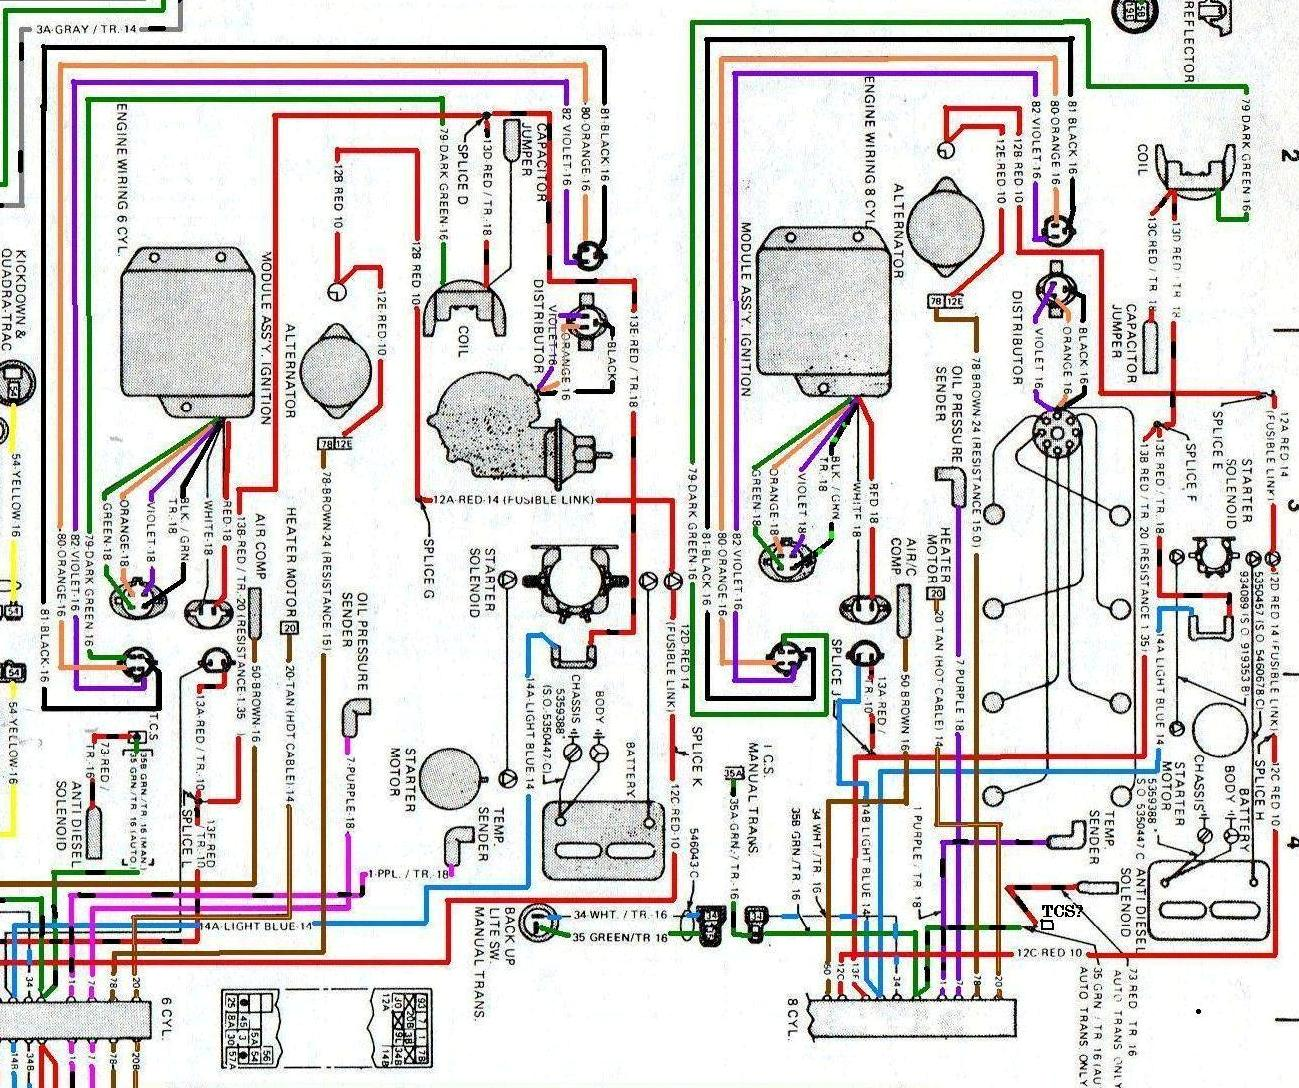 wiring diagram for 1979 jeep cj7 engine training body workouts ...  wires